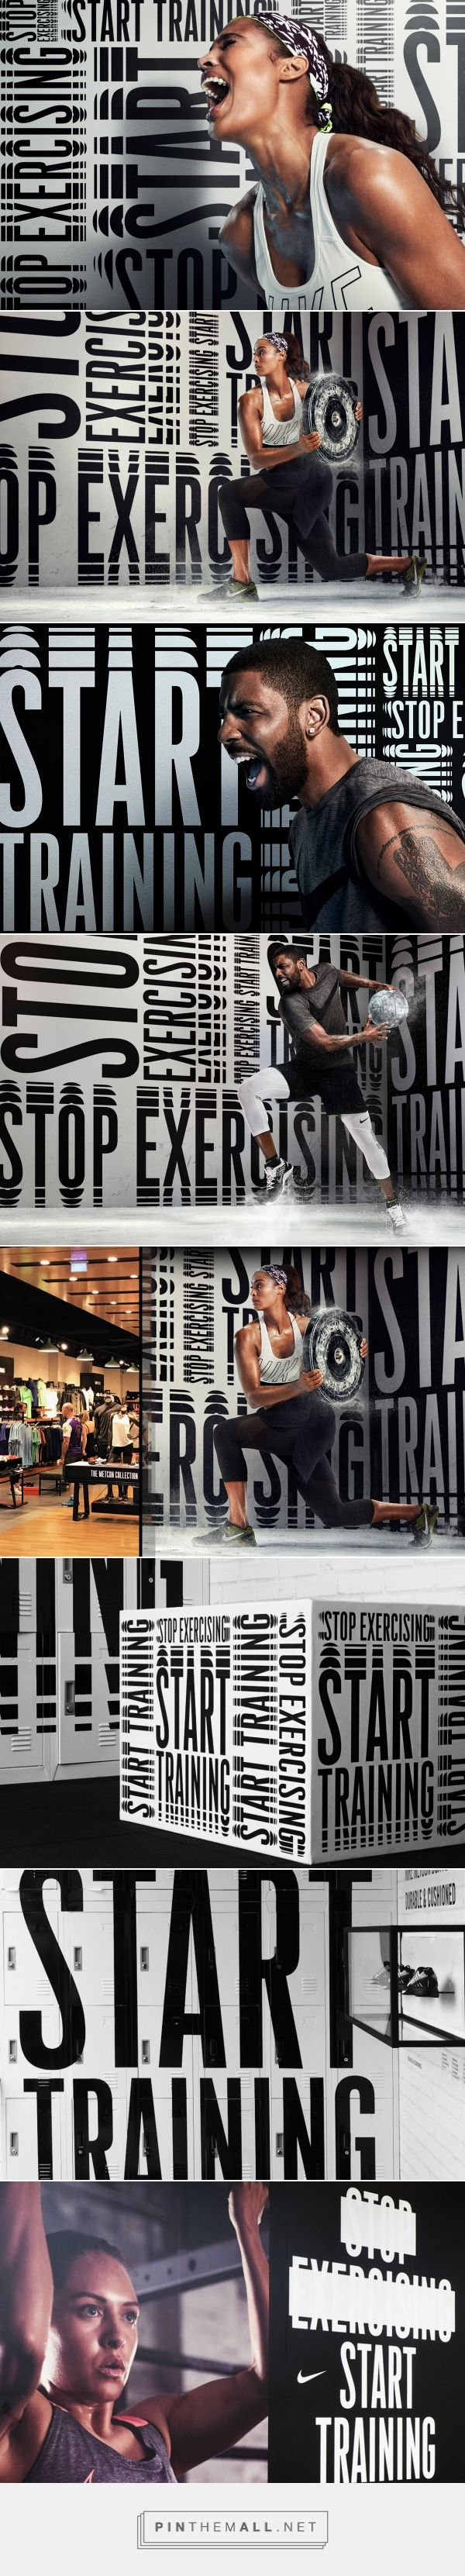 Stop Exercising - SouthSouthWest. #graphic #design #identity #branding #typography